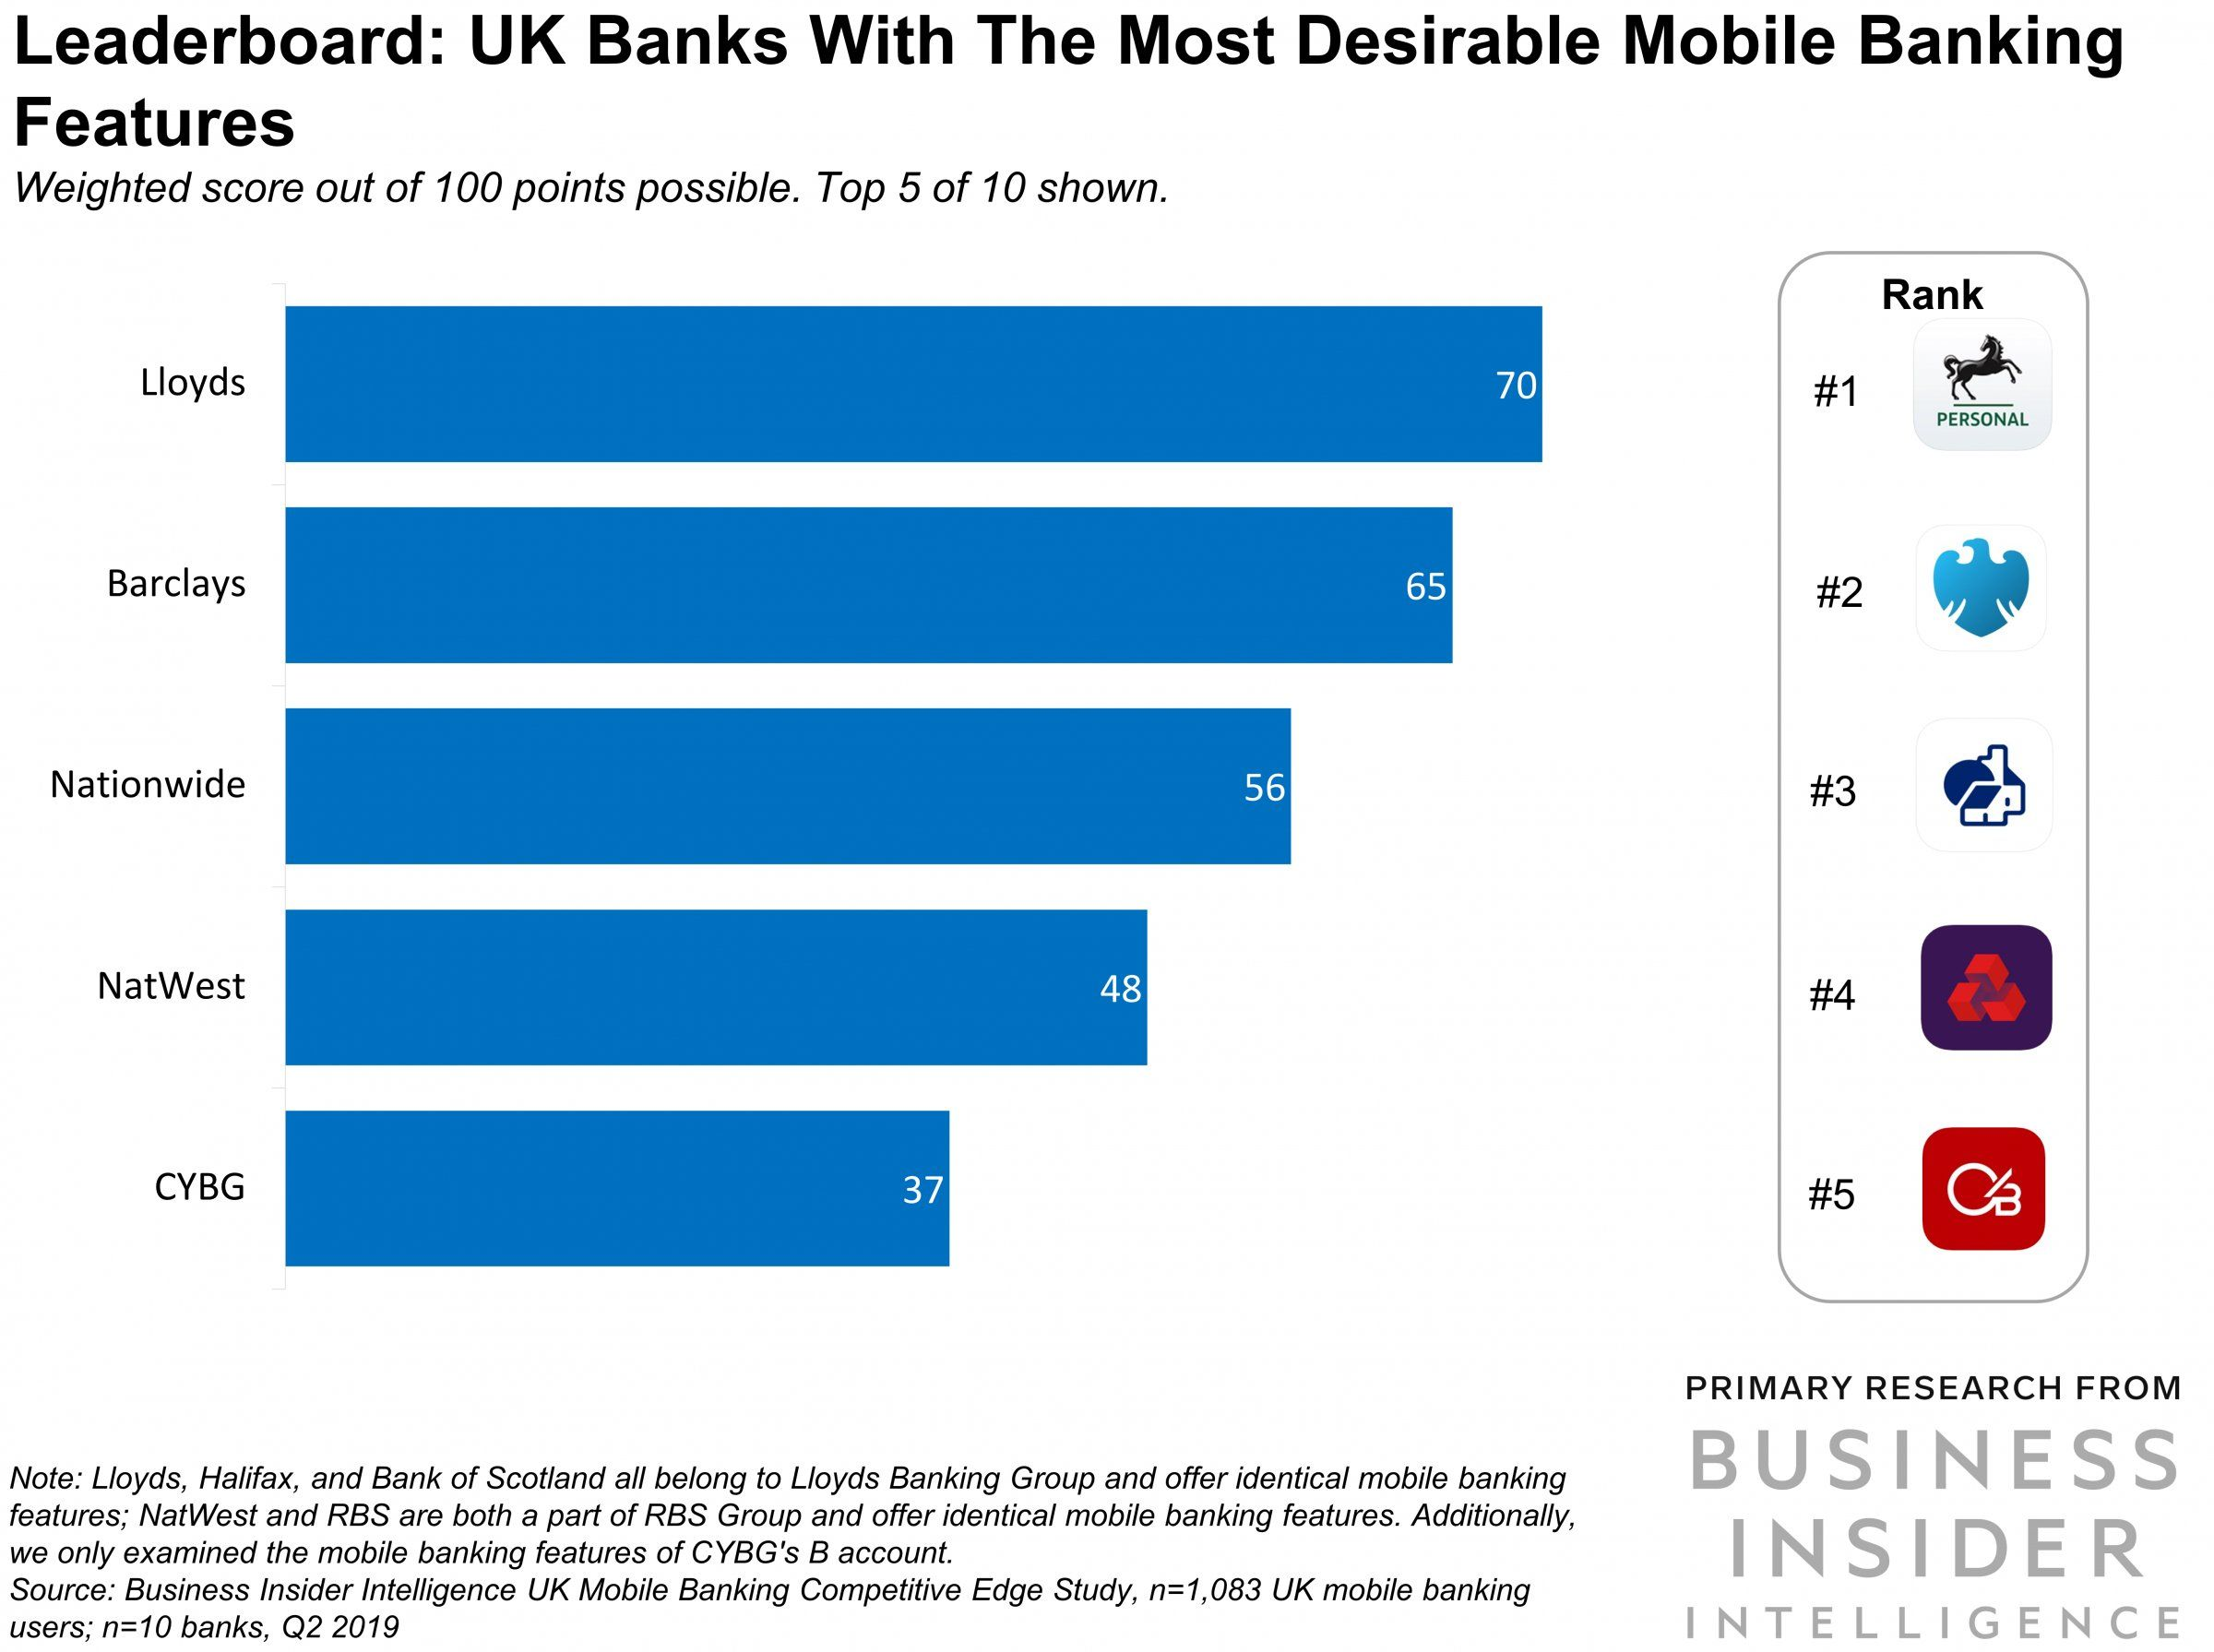 These Are The Top 5 Uk Financial Institutions Ranked By The Mobile